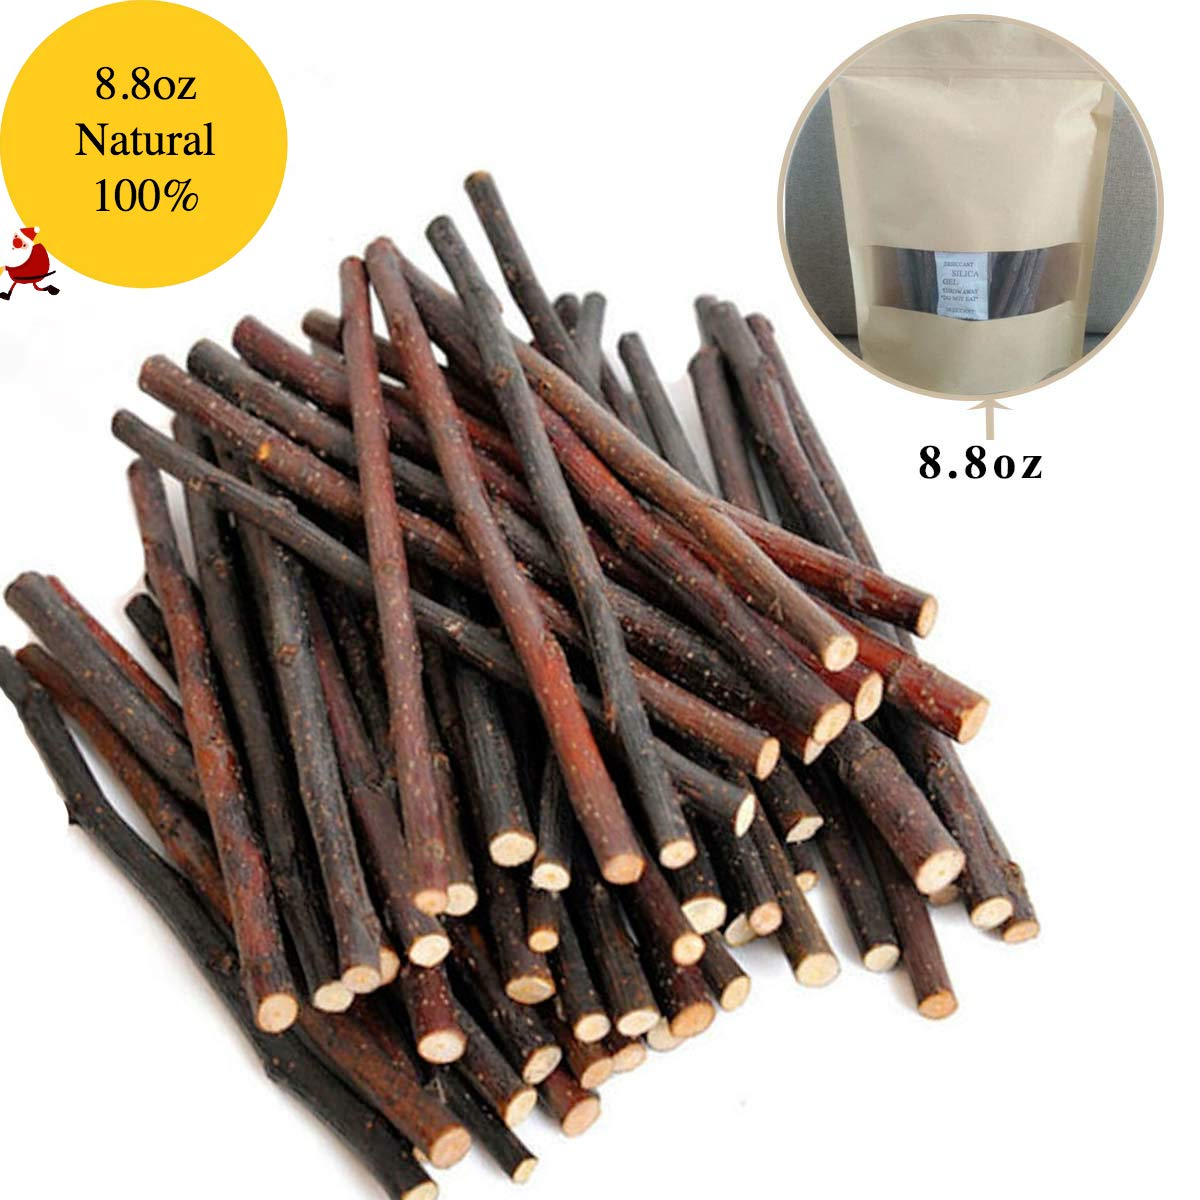 250g and 500g Natural Apple Sticks Small Animals Molar Wood Treats Toys Chinchilla Guinea Pig Hamster Rabbit Gerbil Parrot Bunny and Small Animals Chew Stick Toys Treats 61ZfyqMIORL